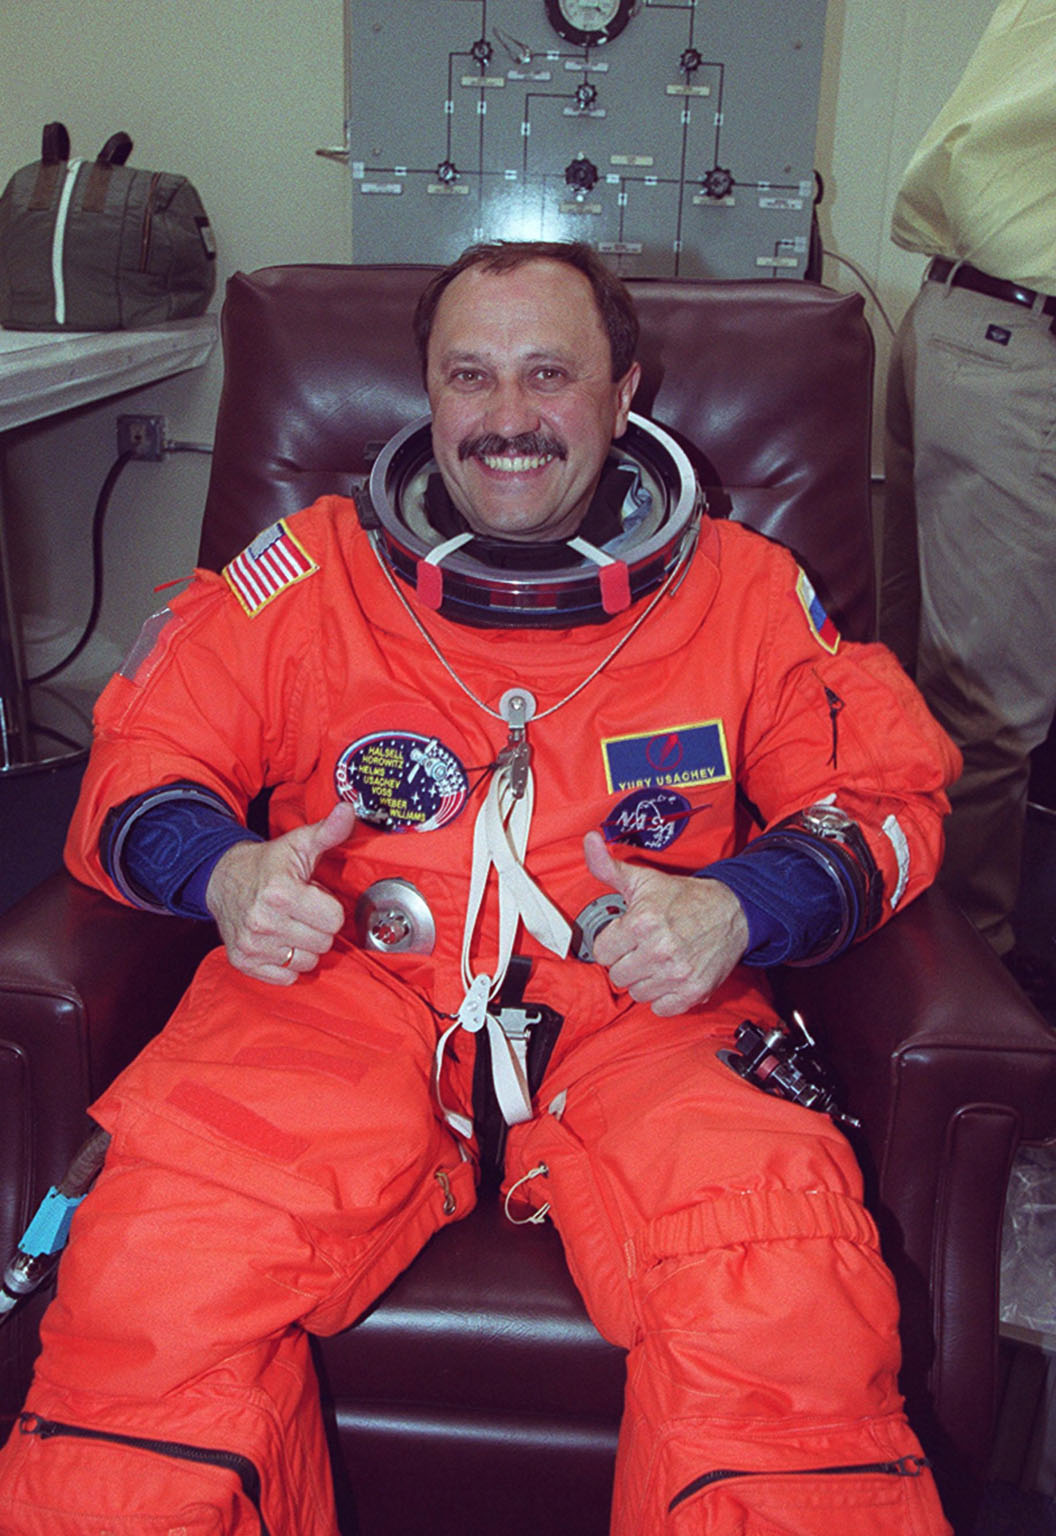 In the Operations and Checkout Building, STS-101 Mission Specialist Yury Usachev of Russia gives two thumbs up while waiting for final check of his launch and entry suit before heading a third time to Launch Pad 39A and launch of Space Shuttle Atlantis. The previous two launch attempts were scrubbed due to high cross winds at the Shuttle Landing Facility. The mission will take the crew to the International Space Station to deliver logistics and supplies and to prepare the Station for the arrival of the Zvezda Service Module, expected to be launched by Russia in July 2000. Also, the crew will conduct one space walk. This is the third assembly flight to the Space Station. After the 10-day mission, Atlantis is expected to land at KSC May 6 at about 12:03 p.m. EDT